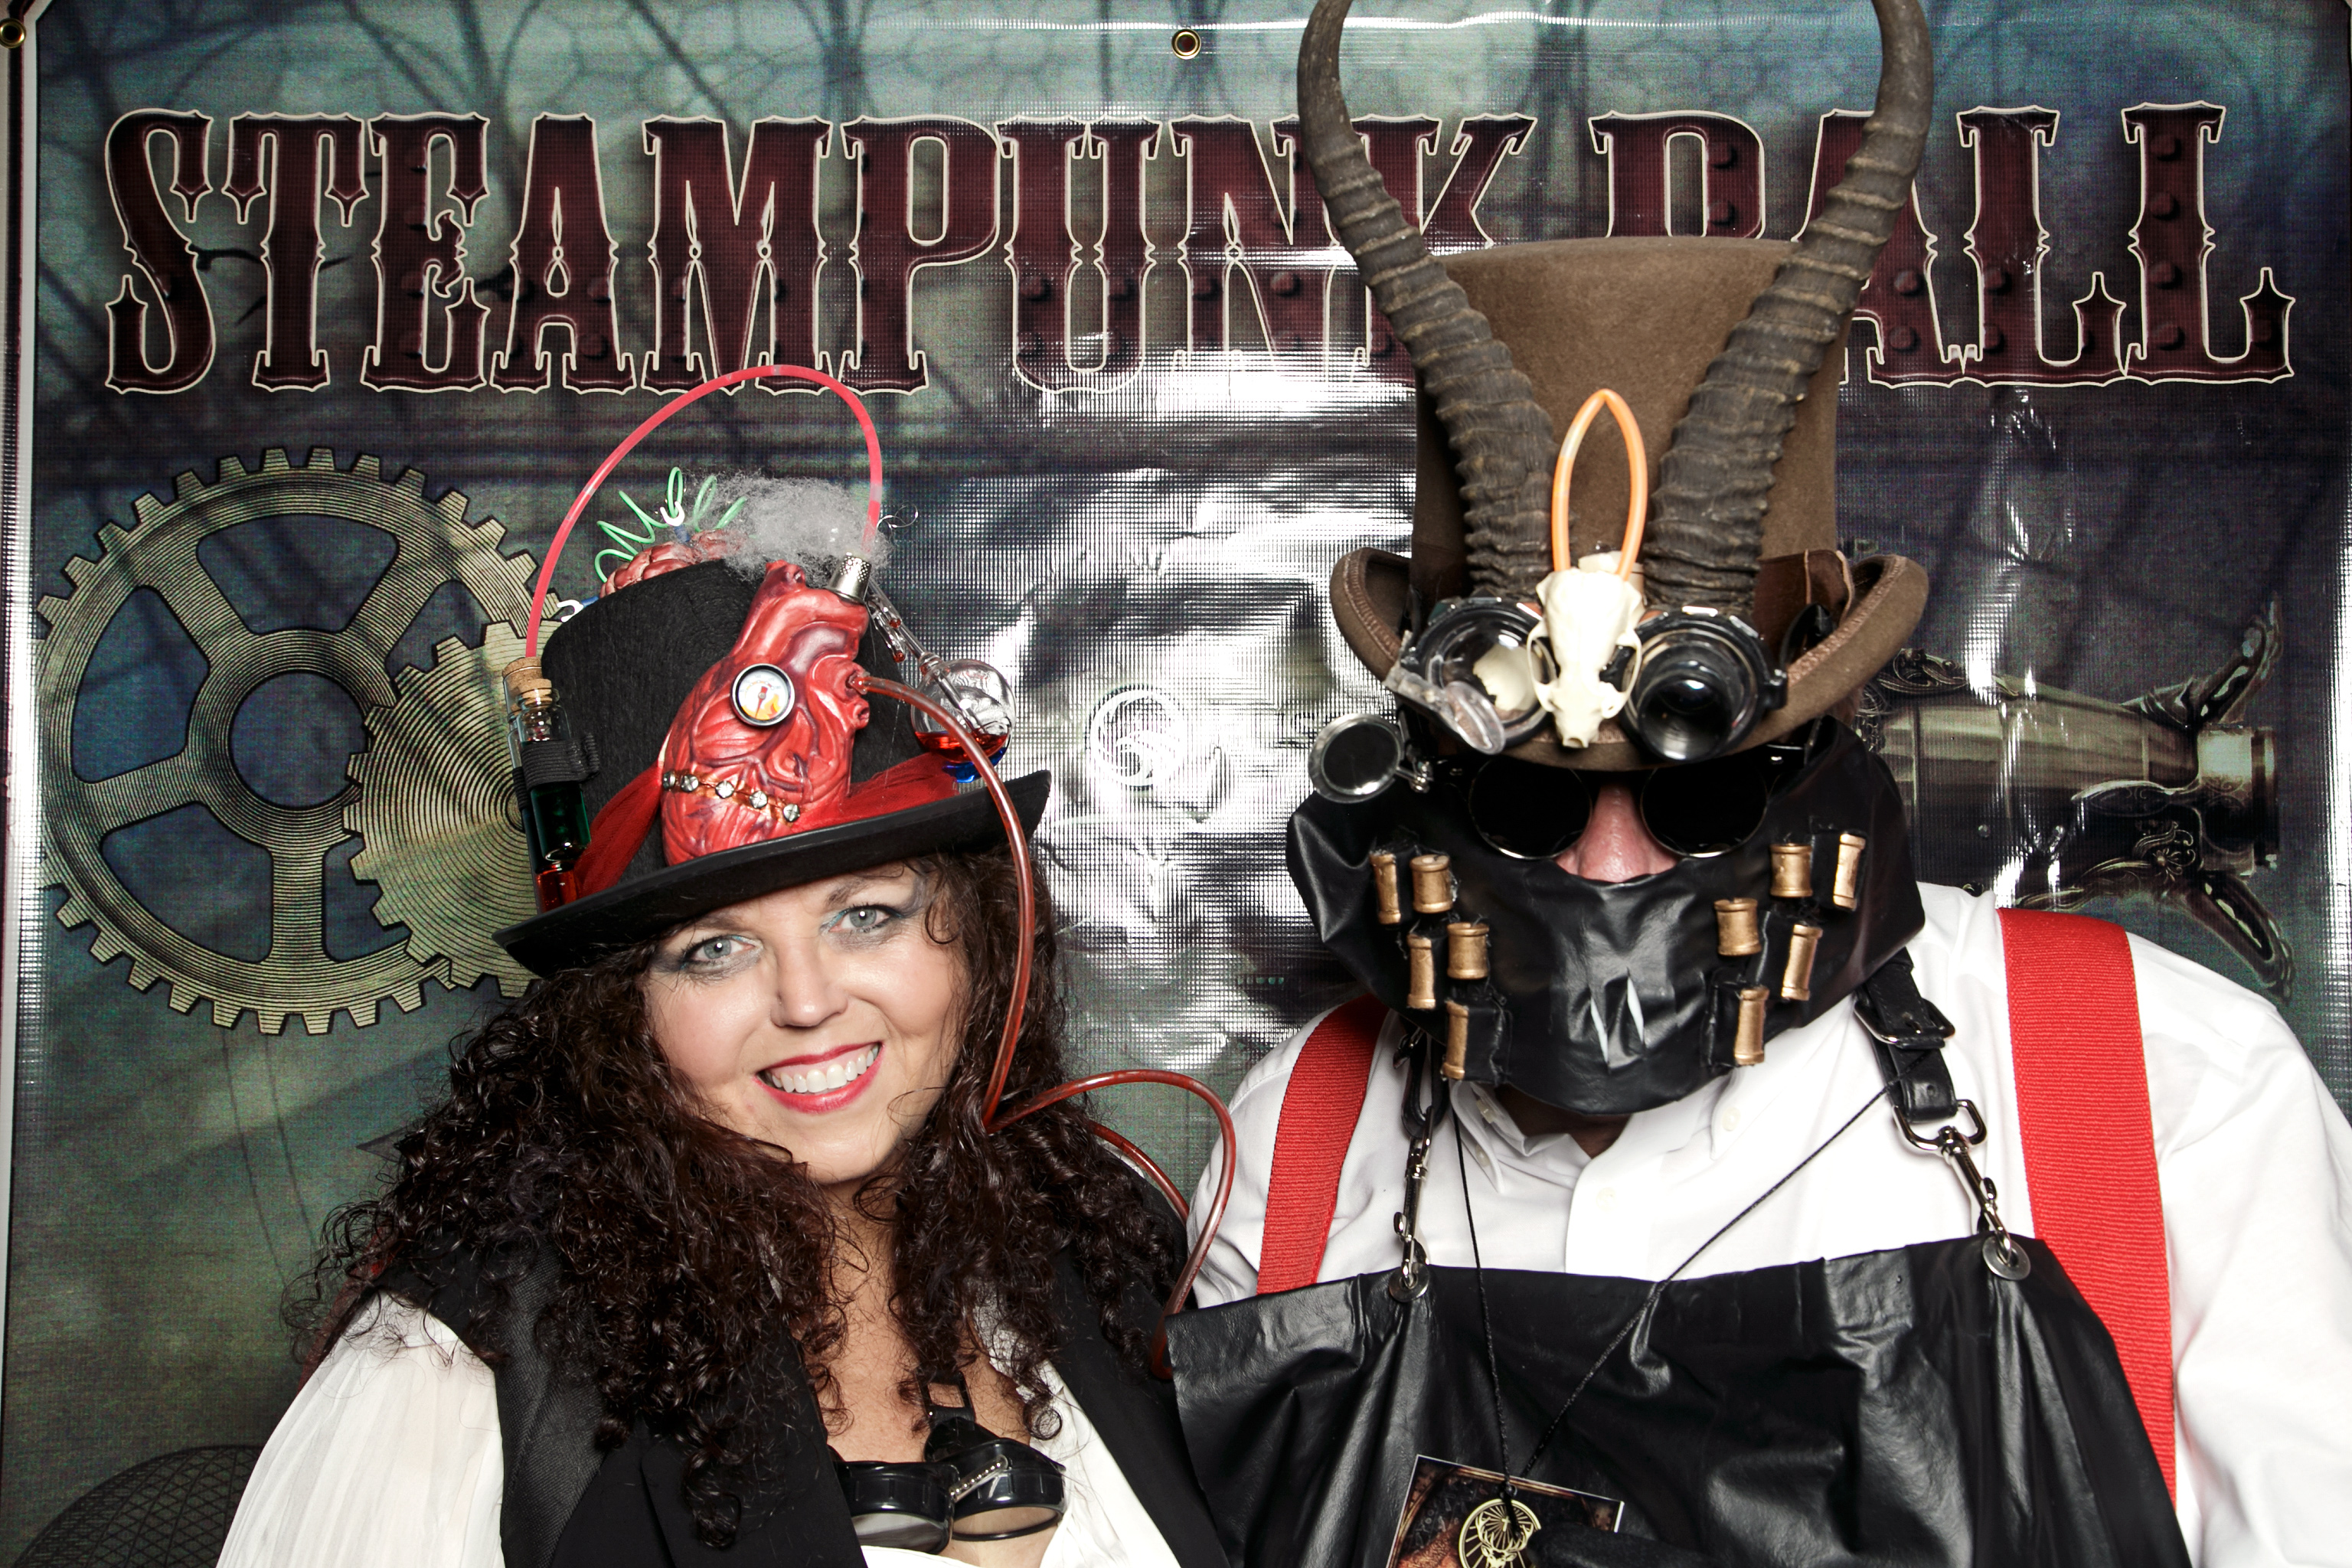 portrait booth photos from the tampa bay steampunk ball, october 2017